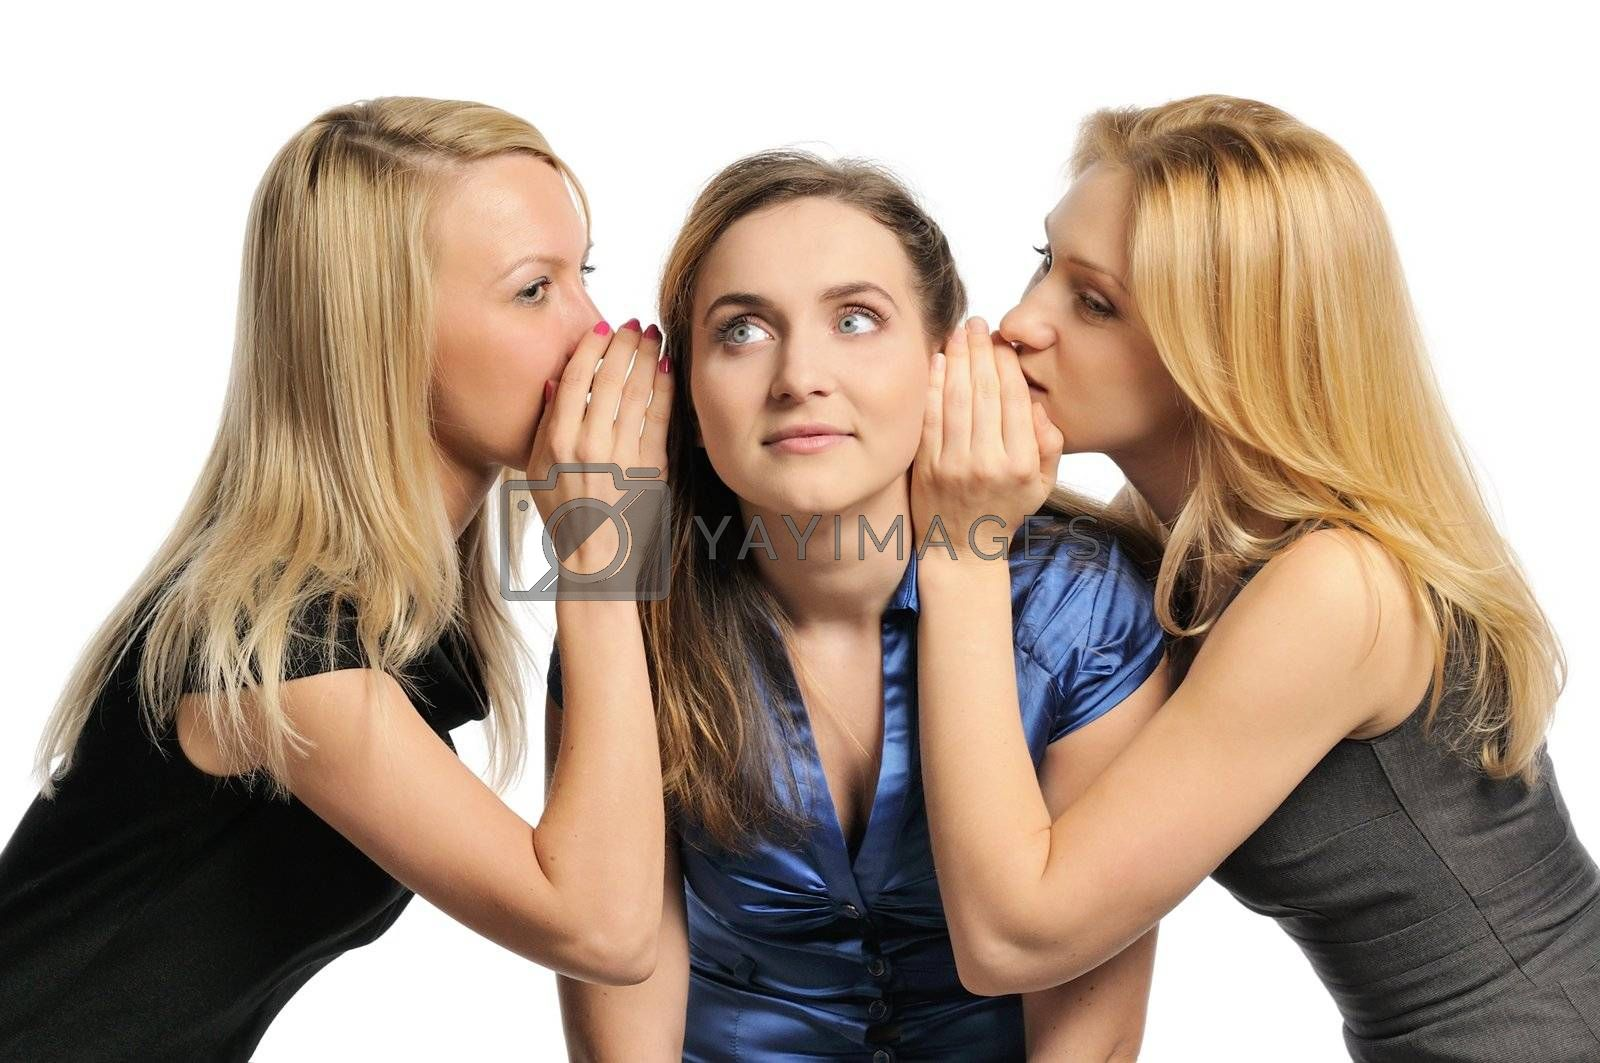 Three young girls gossiping, whispering to each other's ears. Isolated on white.